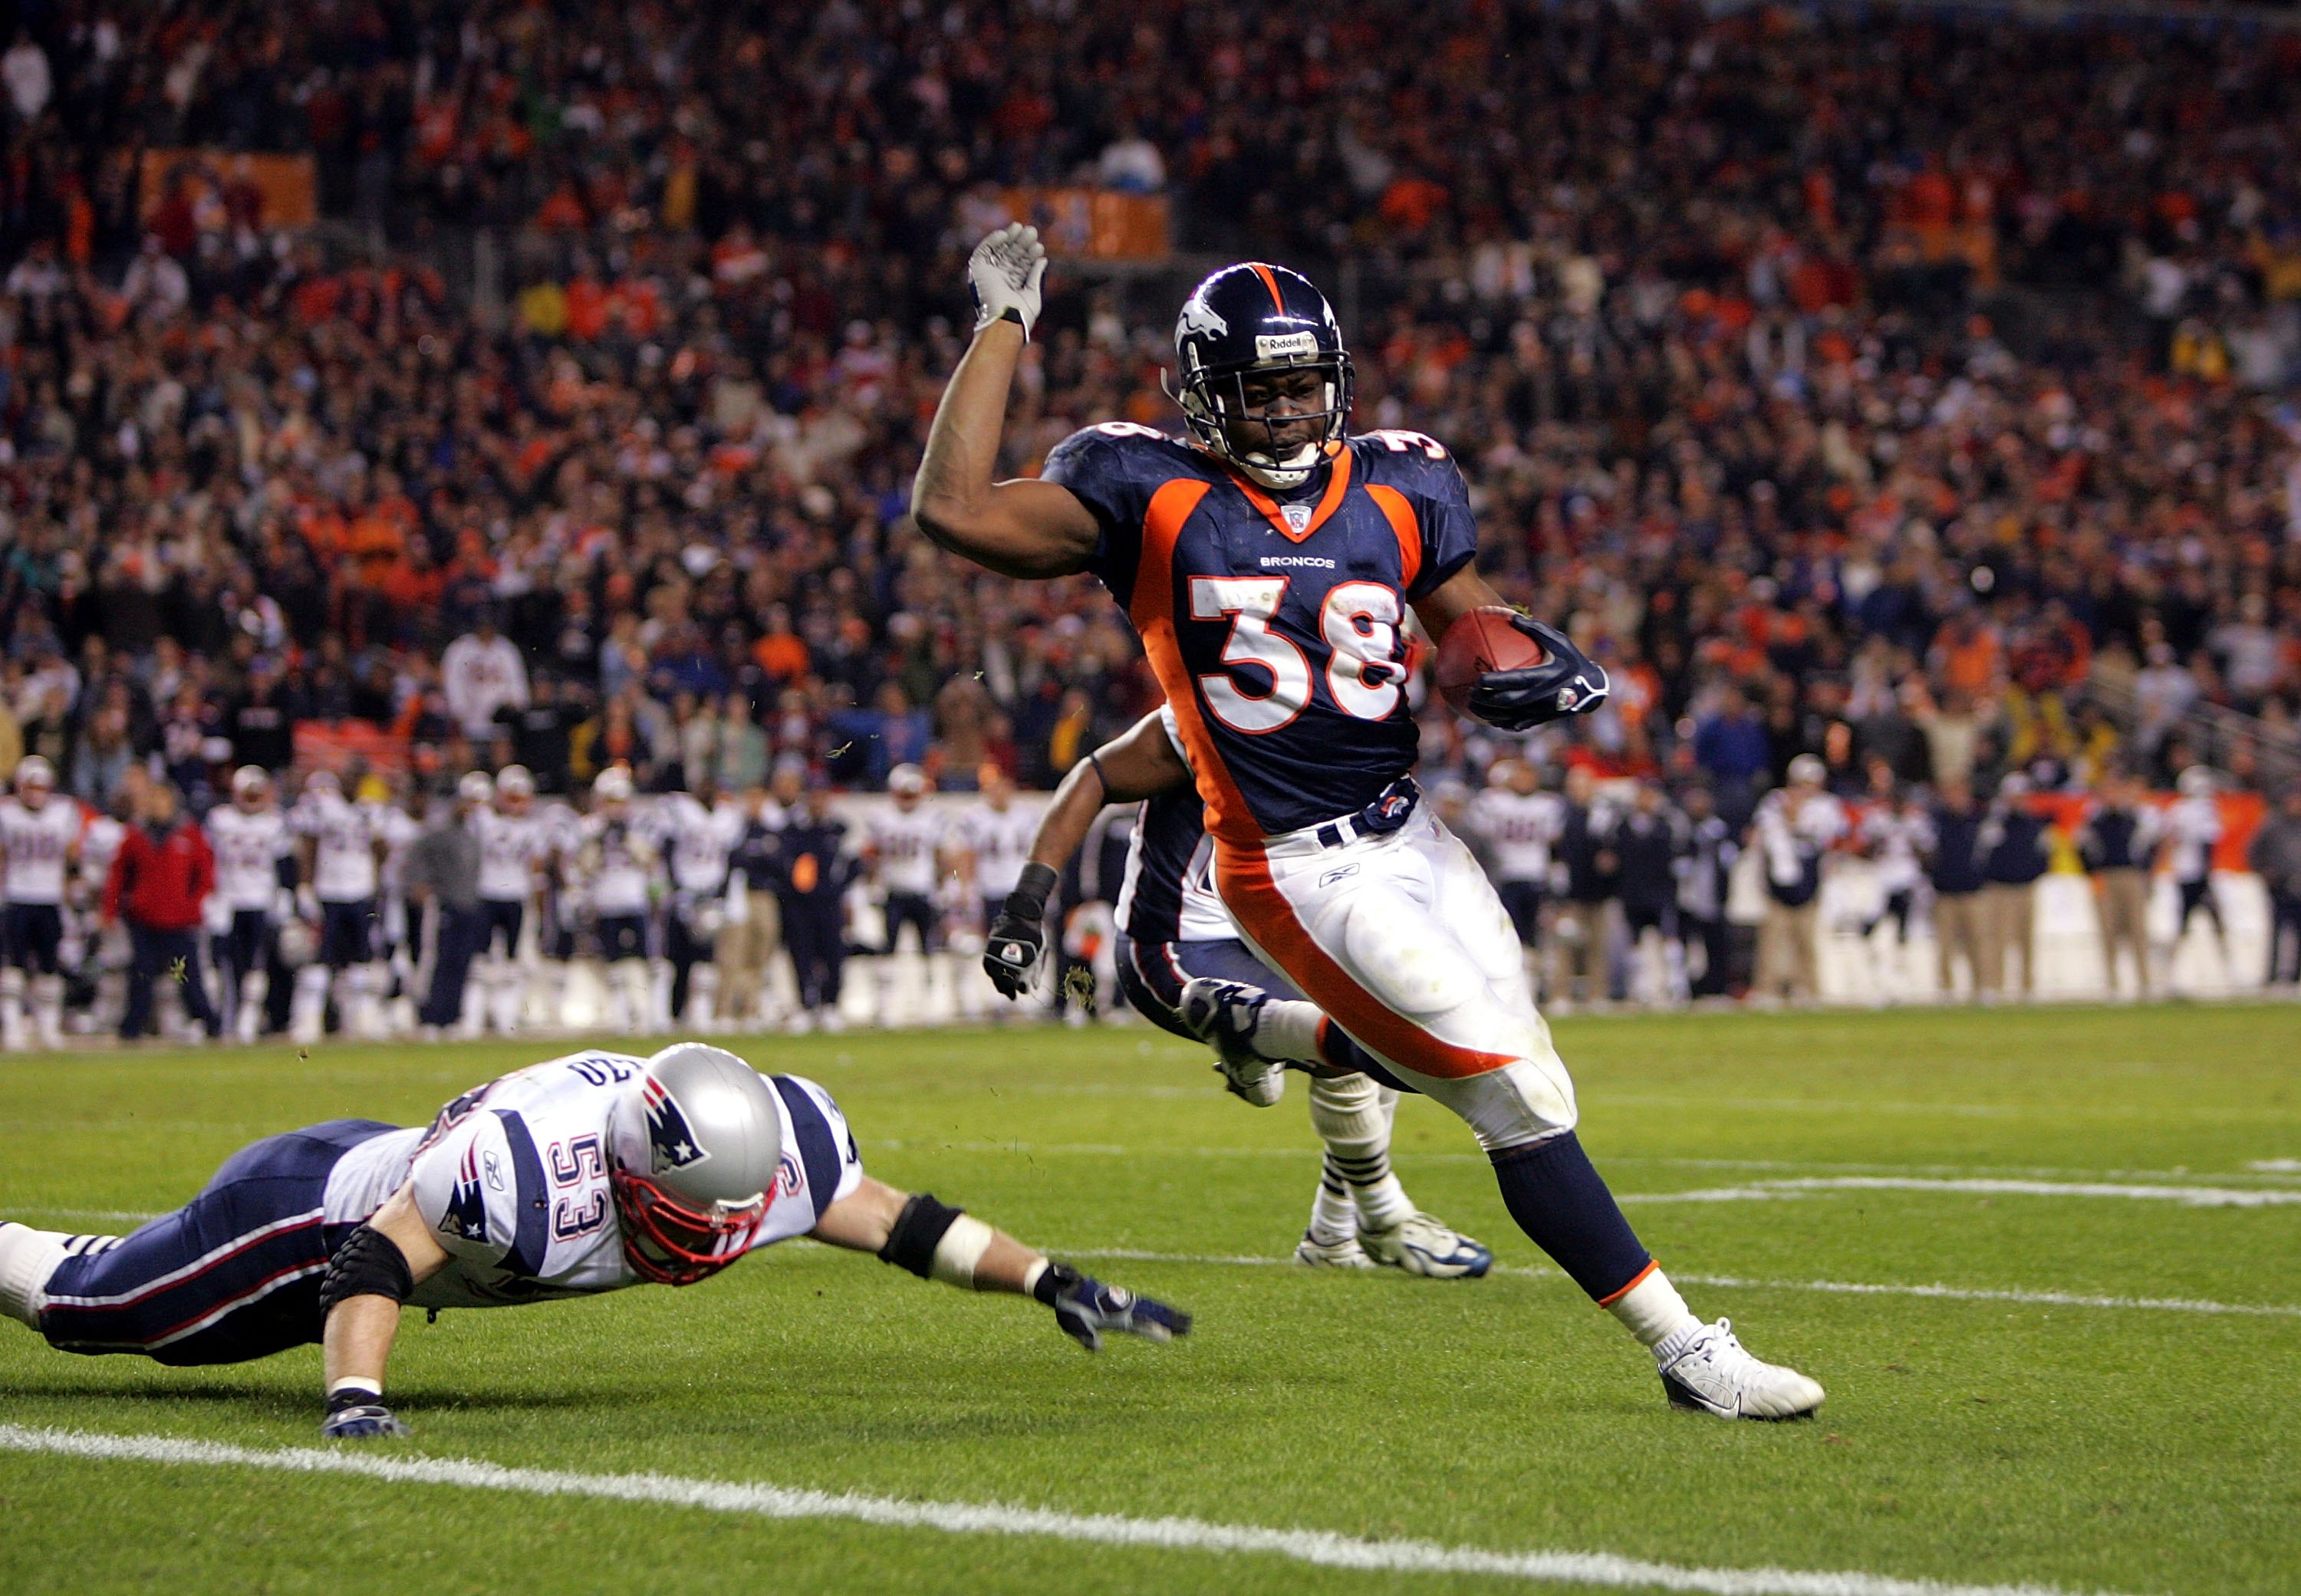 DENVER - JANUARY 14:  Mike Anderson #38 of the Denver Broncos runs for his second touchdown past Larry Izzo #53 of the New England Patriots during the AFC Divisional Playoff game on January 14, 2006 at Invesco Field at Mile High in Denver, Colorado.  (Pho